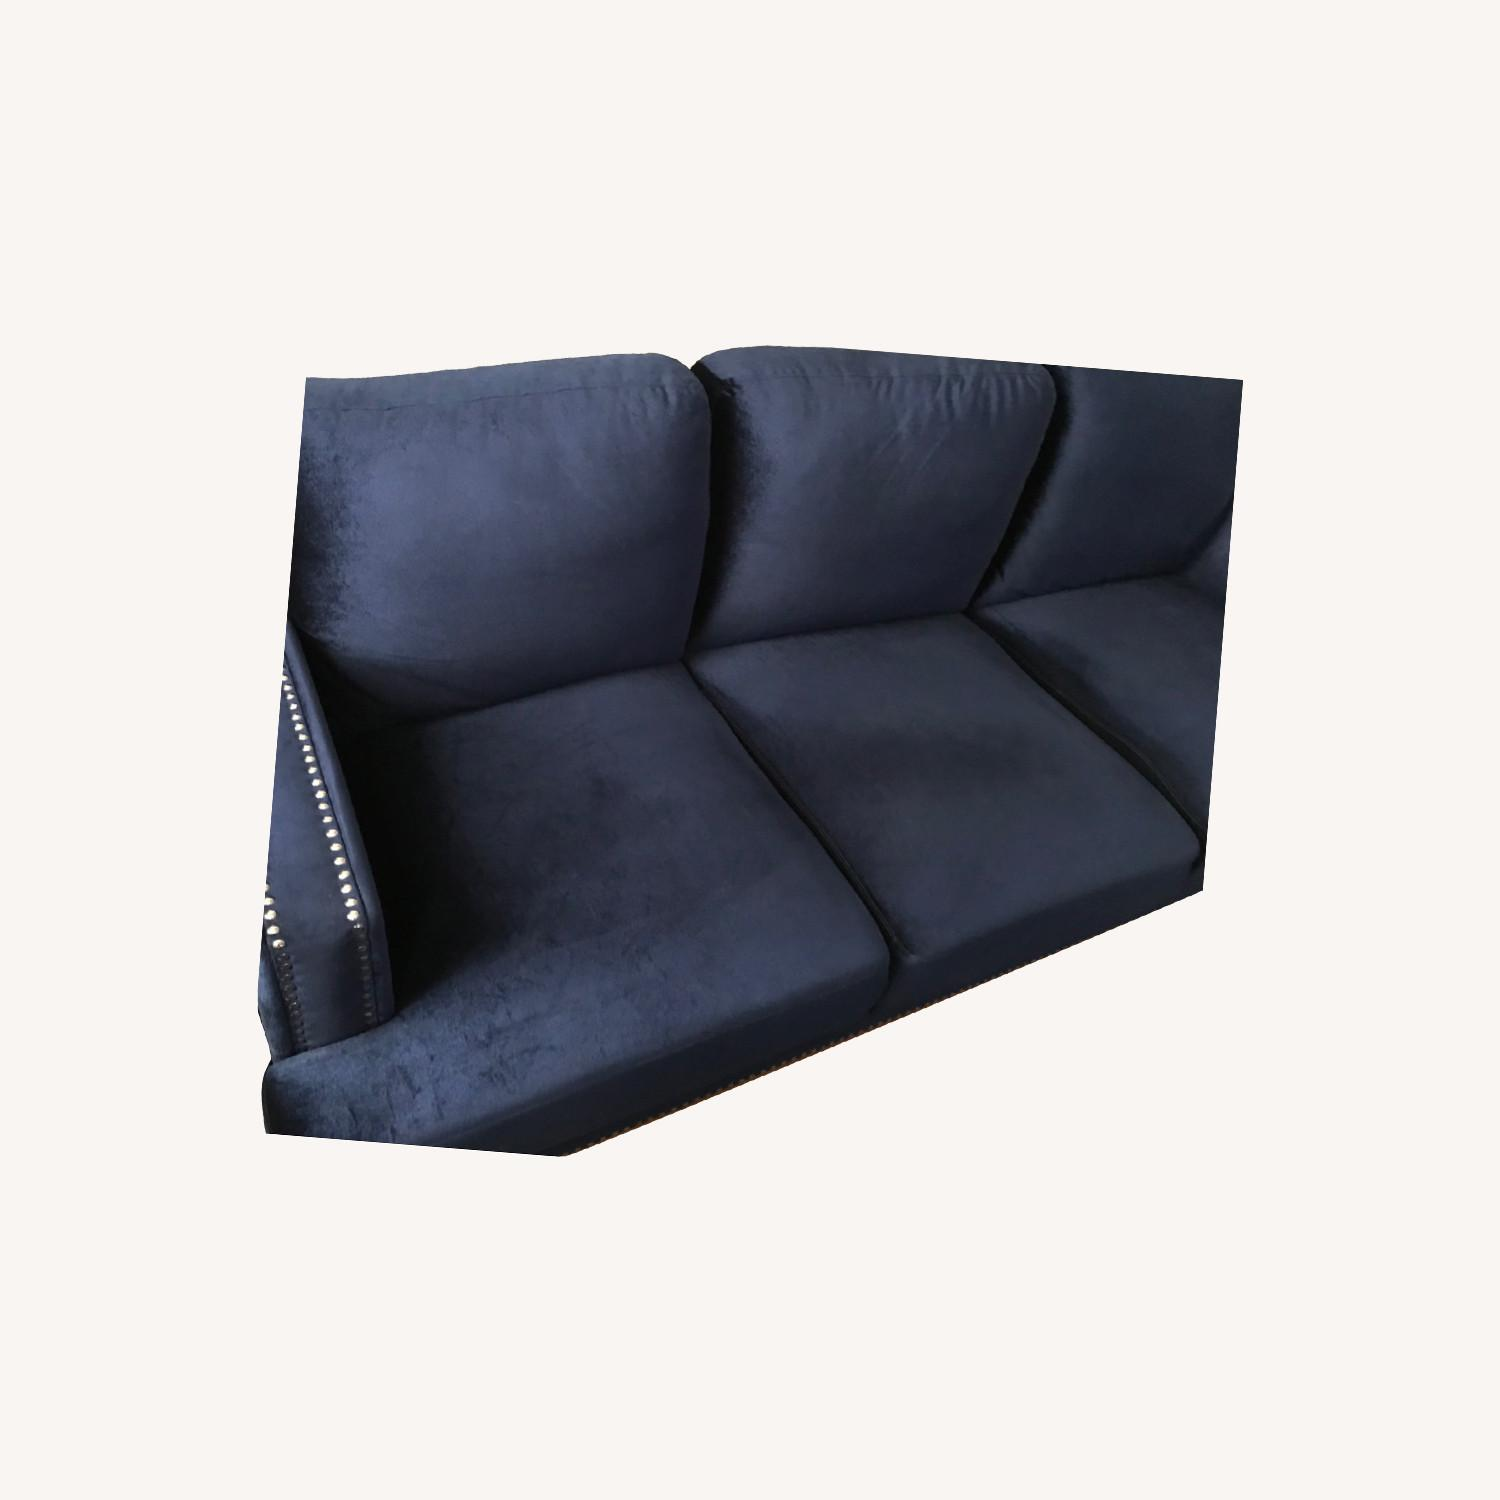 Kia Recessed Arm Sofa - Velvet - image-0